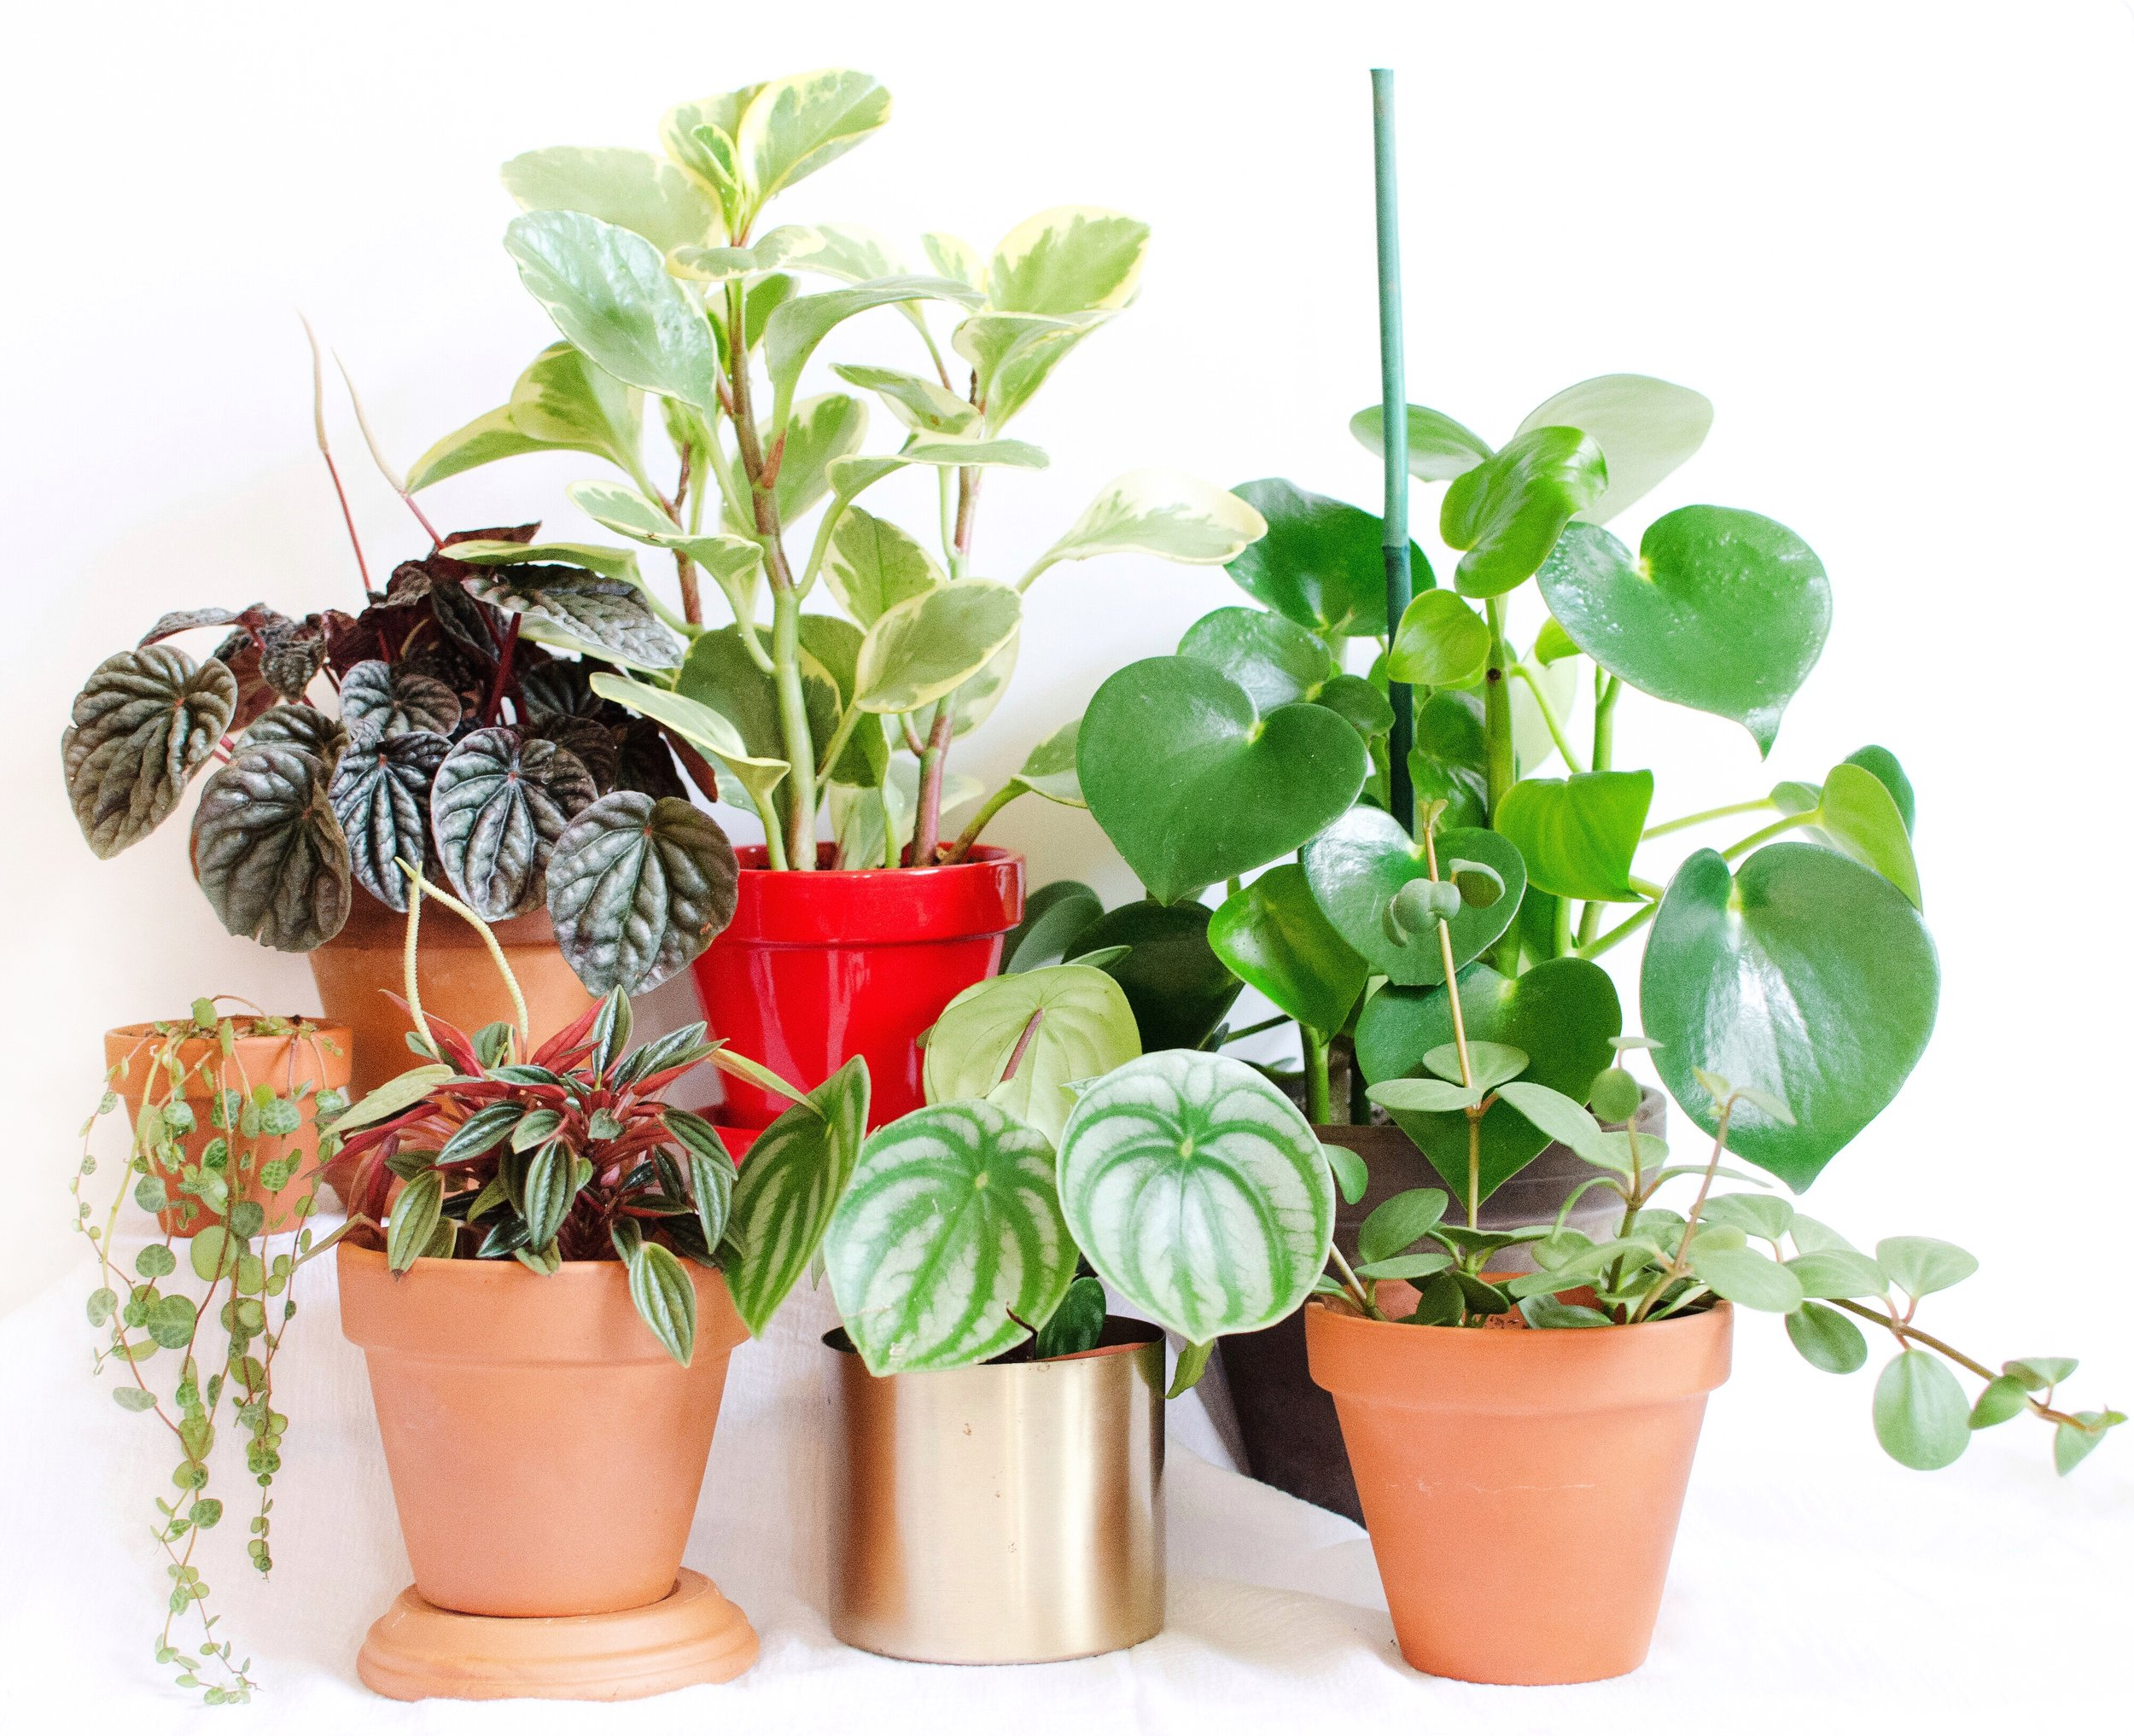 Clockwise from middle left:  Peperomia prostrata  (small trailing sp.),  P. caperata  'Red Ripple',  P. obtusifolia ,  P. polybotrya ,  P.  'Hope',  P. argyreia,   P. caperata  'Rosso'